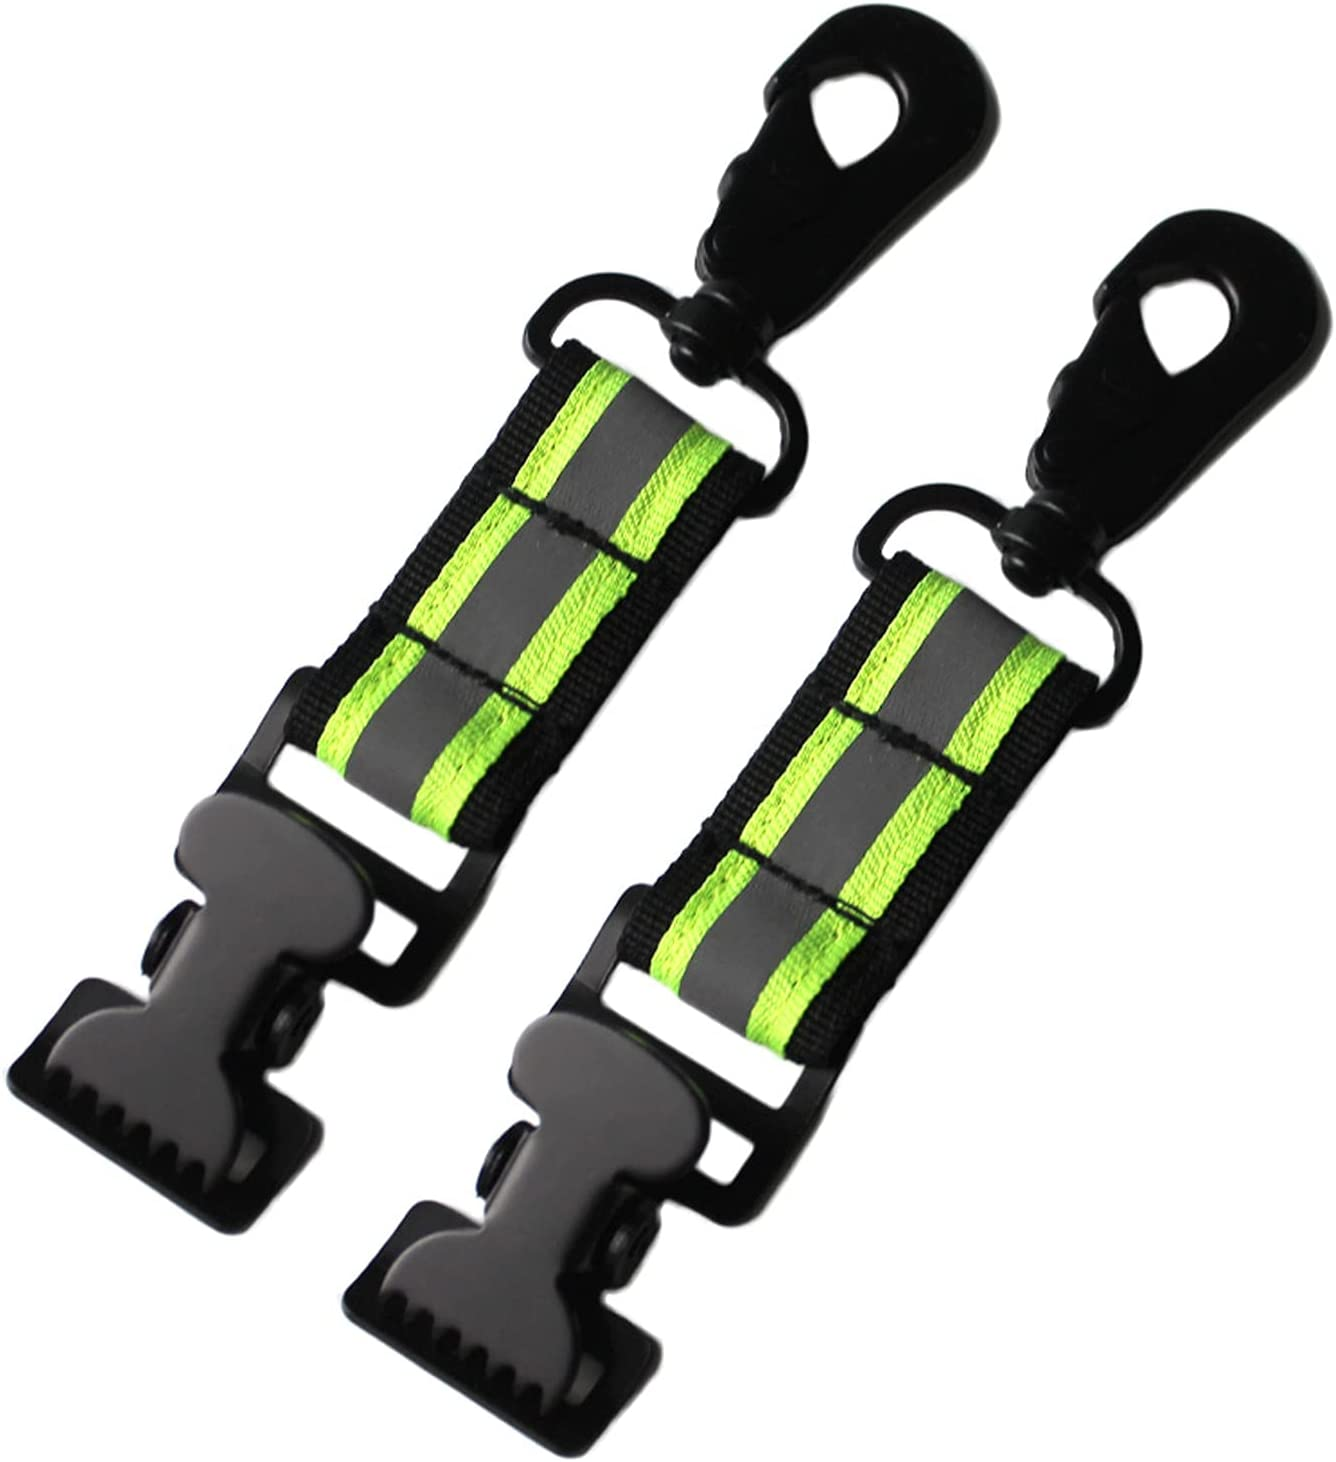 MELOTOUGH Firefighter Glove Strap Leas Max Max 72% OFF 43% OFF with Holder